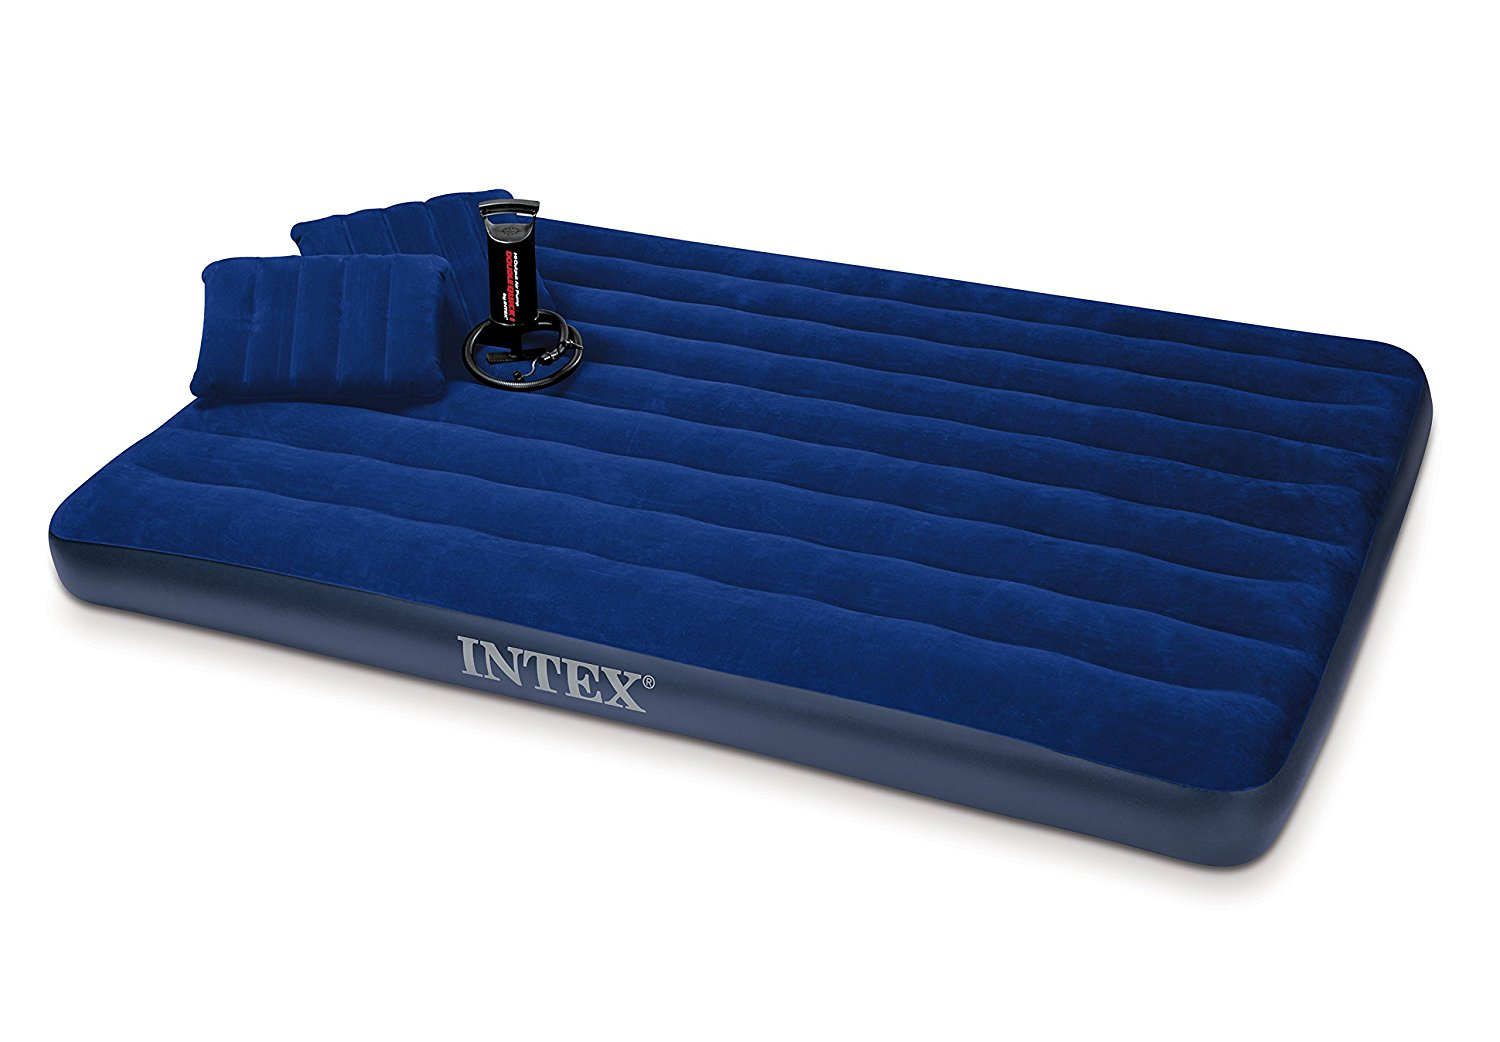 81daO7CNlHL. SL1500  - Intex Classic Downy Airbed Set with 2 Pillows and Double Quick Hand Pump, Queen